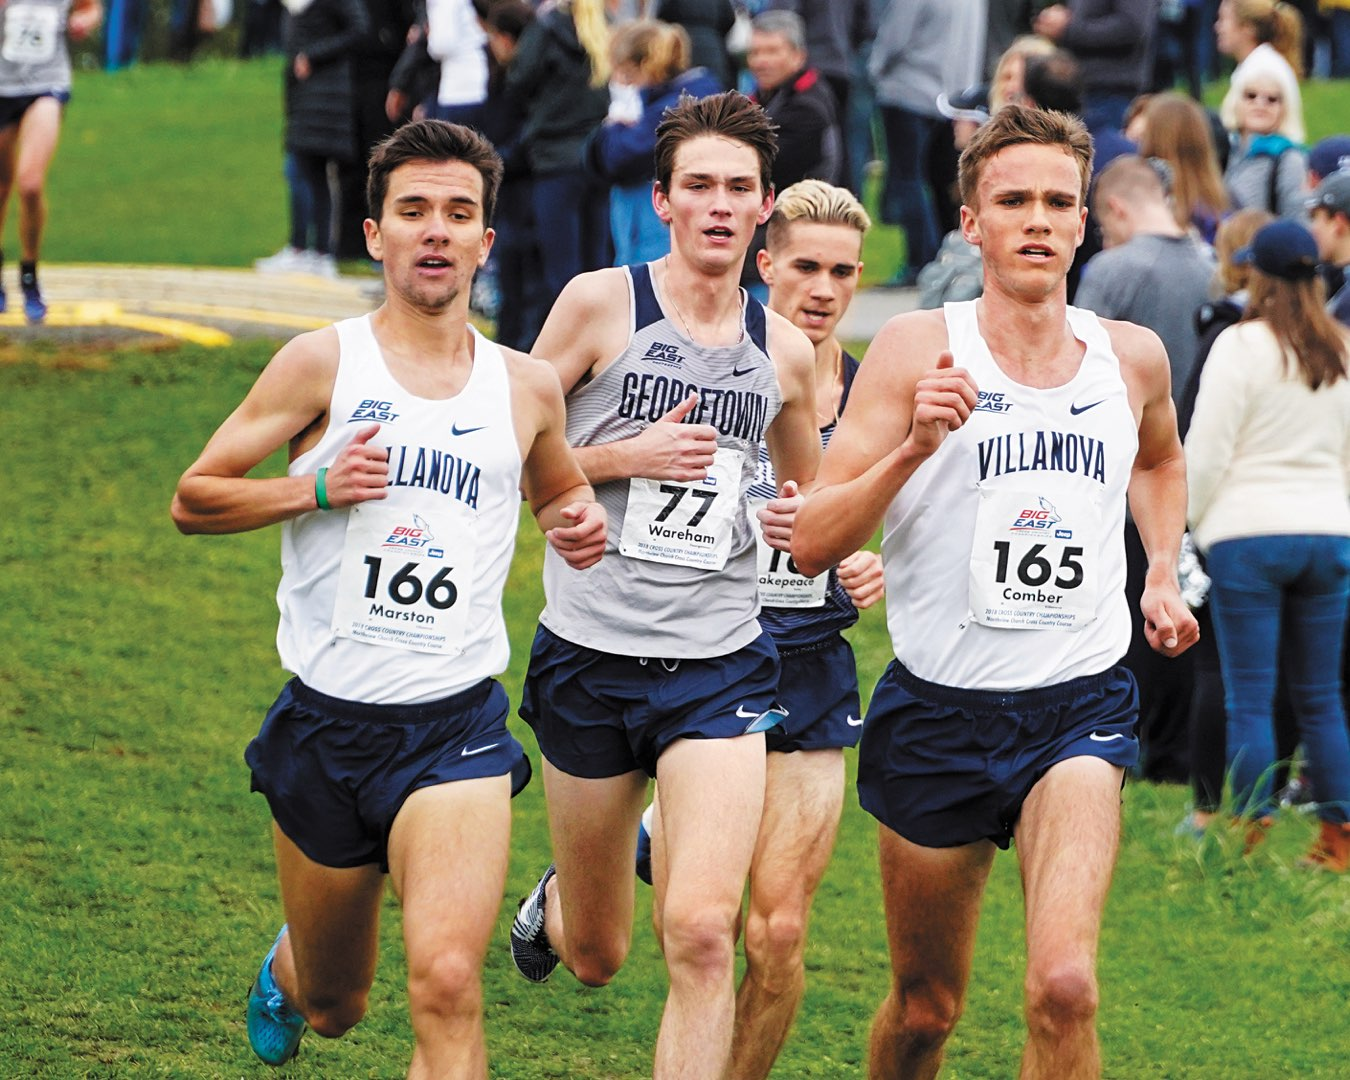 Two Villanova Men's Indoor Track and Field team members running with two other runners close behind them